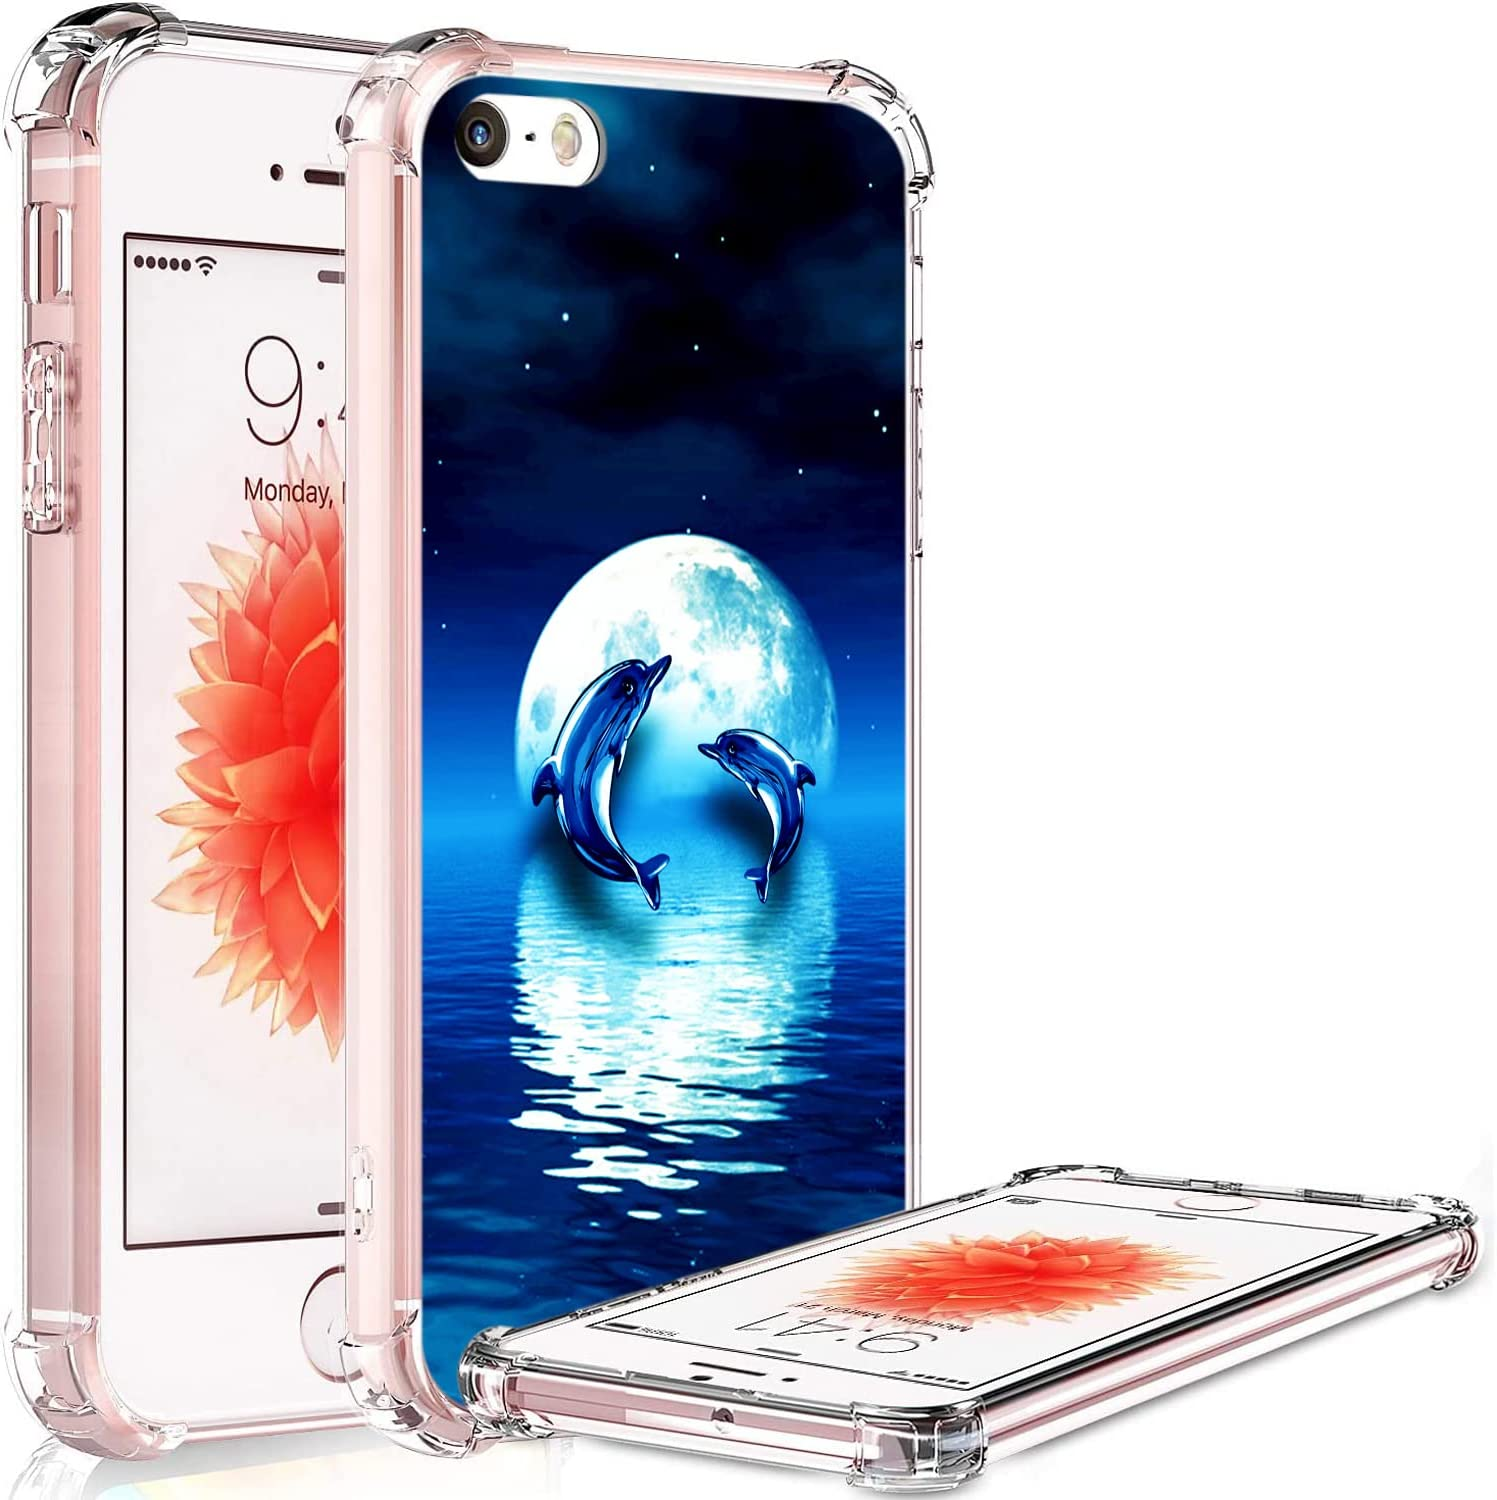 Ecute Clear Flexible Side Style Hard Back Case Compatible with iPhone 5/5S/SE - Moon Dolphin